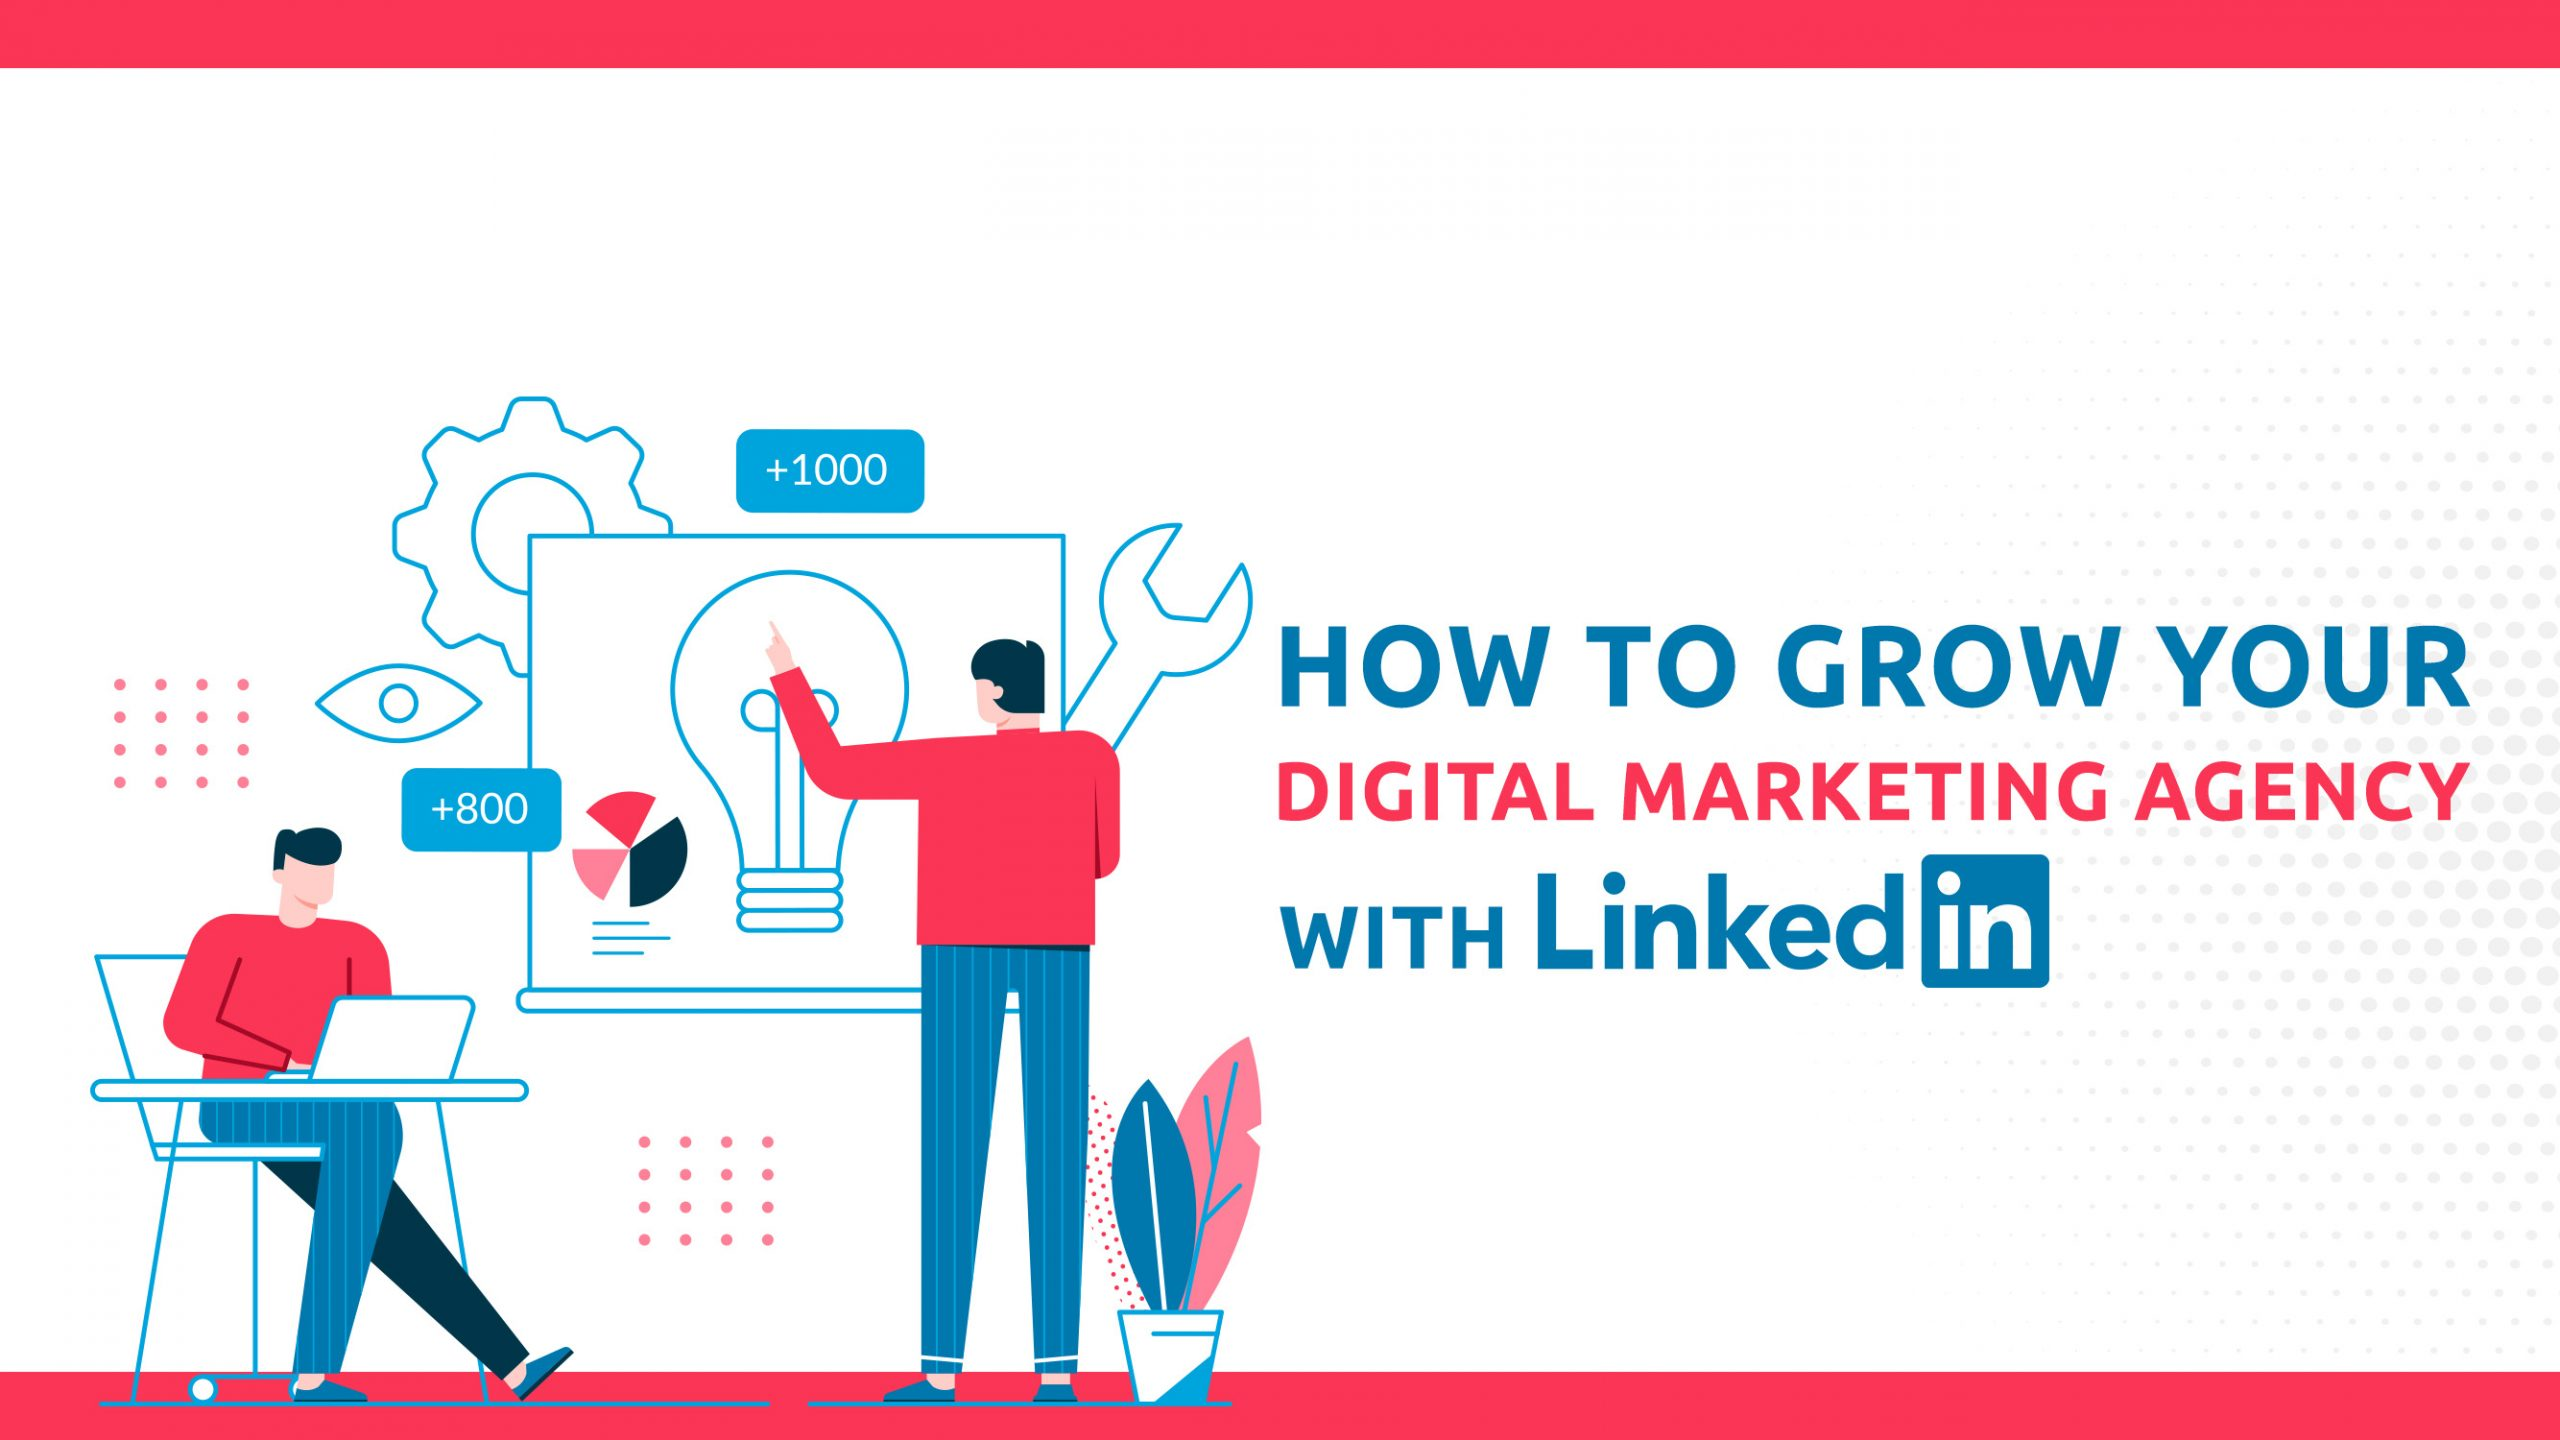 How To Grow Your Digital Marketing Agency With LinkedIn